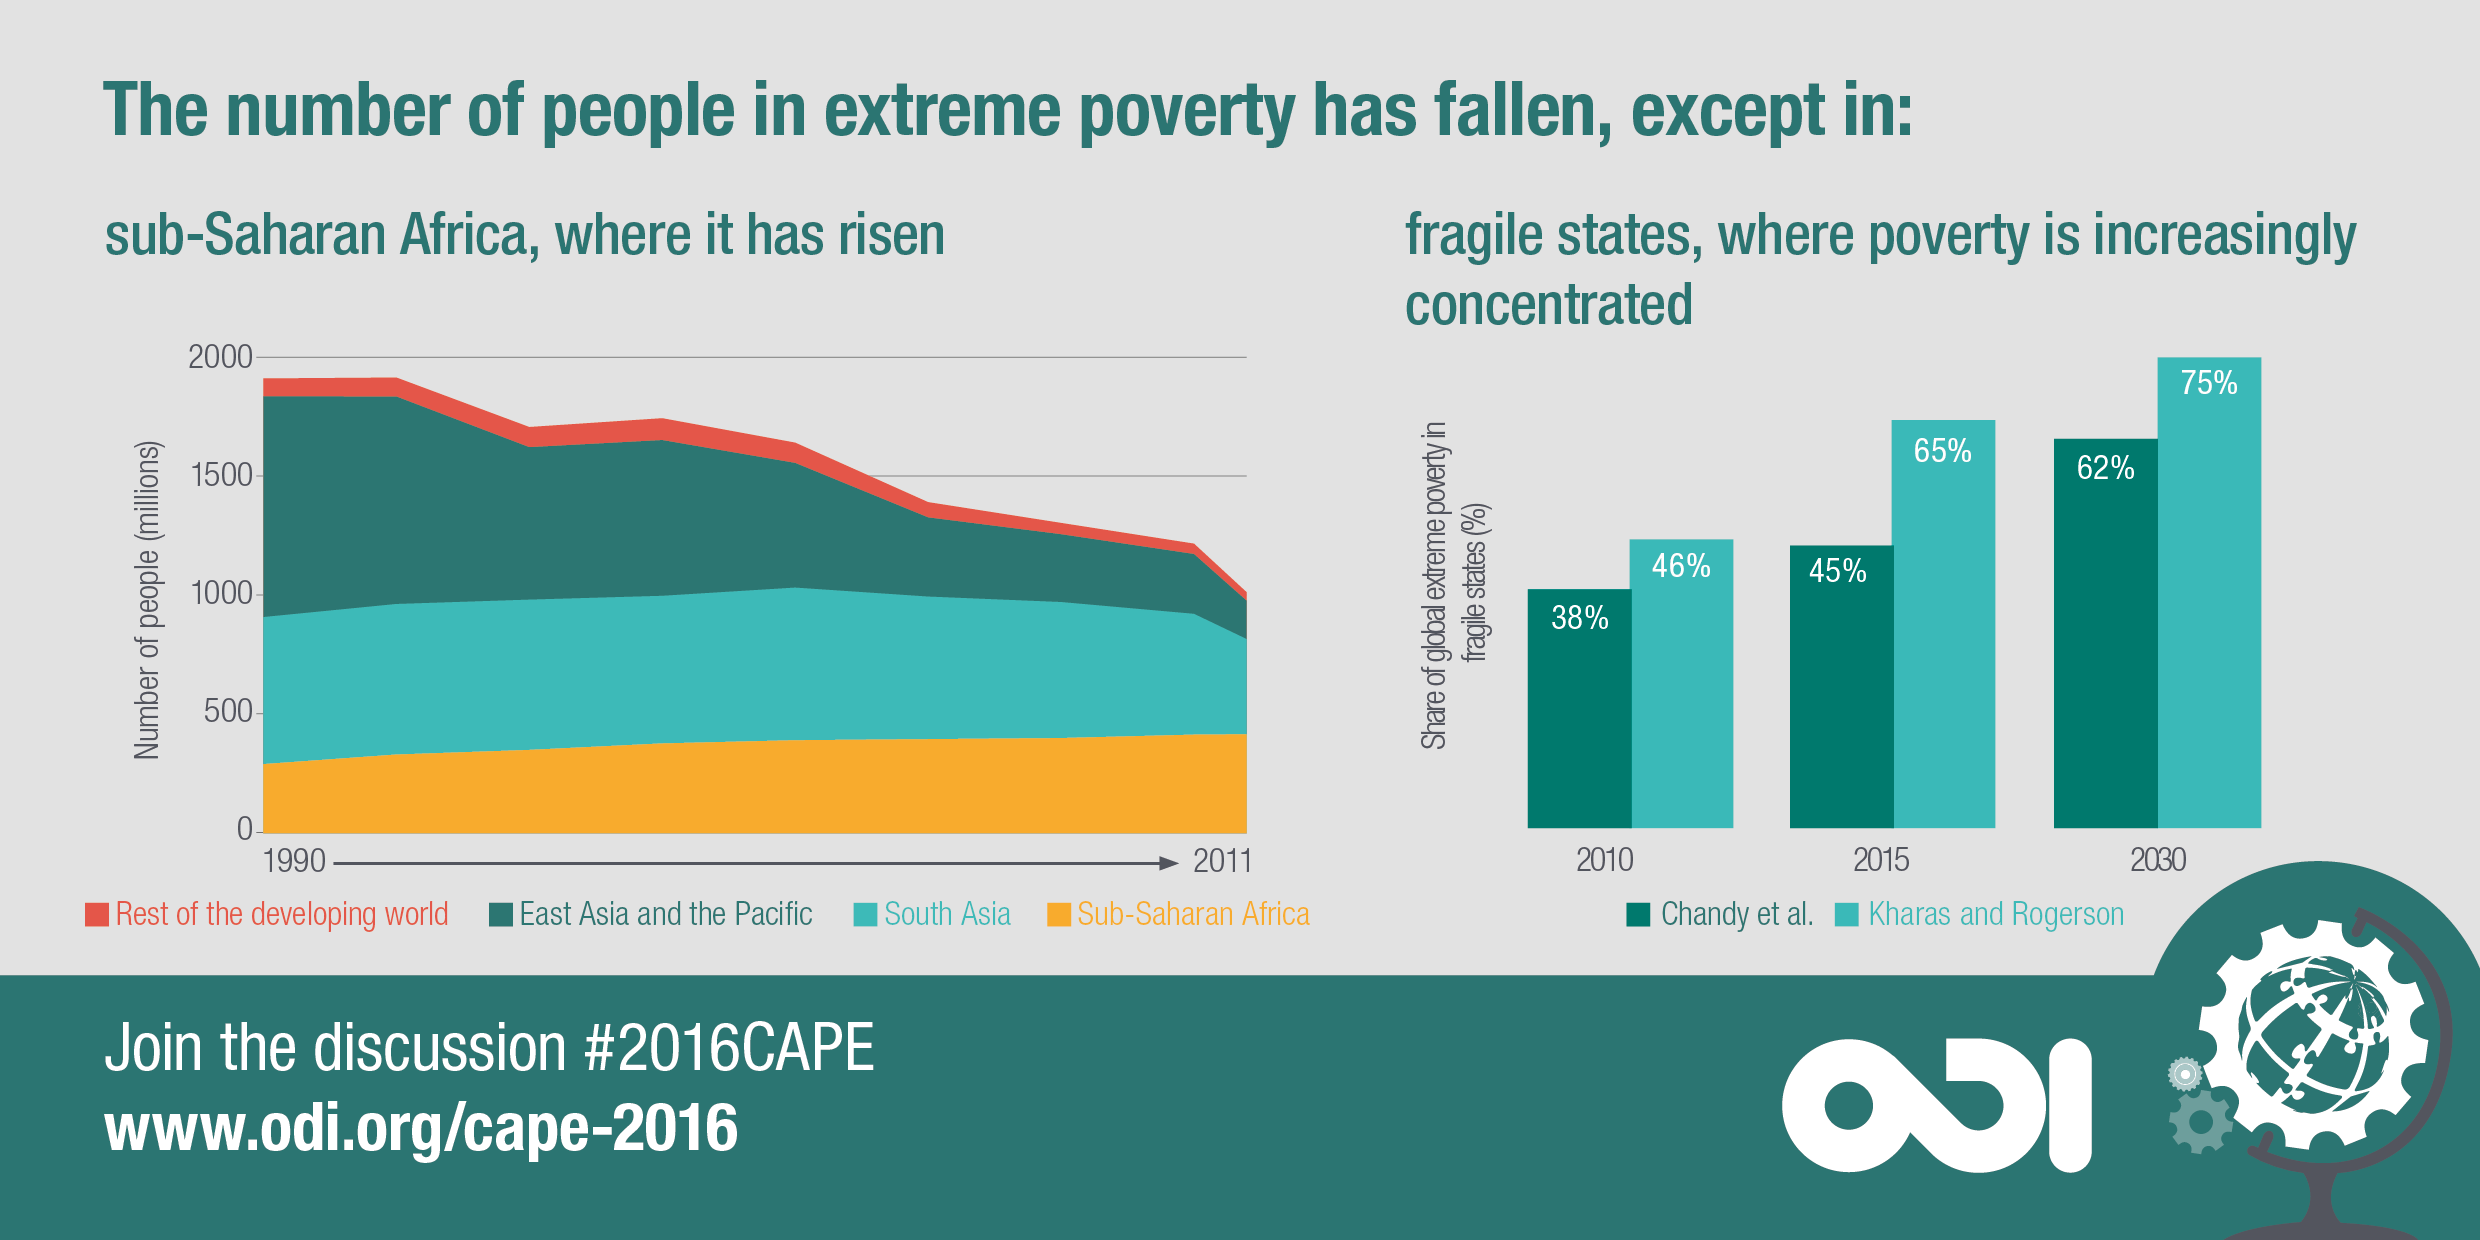 The number of people living in extreme poverty has fallen. Except in sub-Saharan Africa, where it has risen, and in fragile states, where poverty is increasingly concentrated.